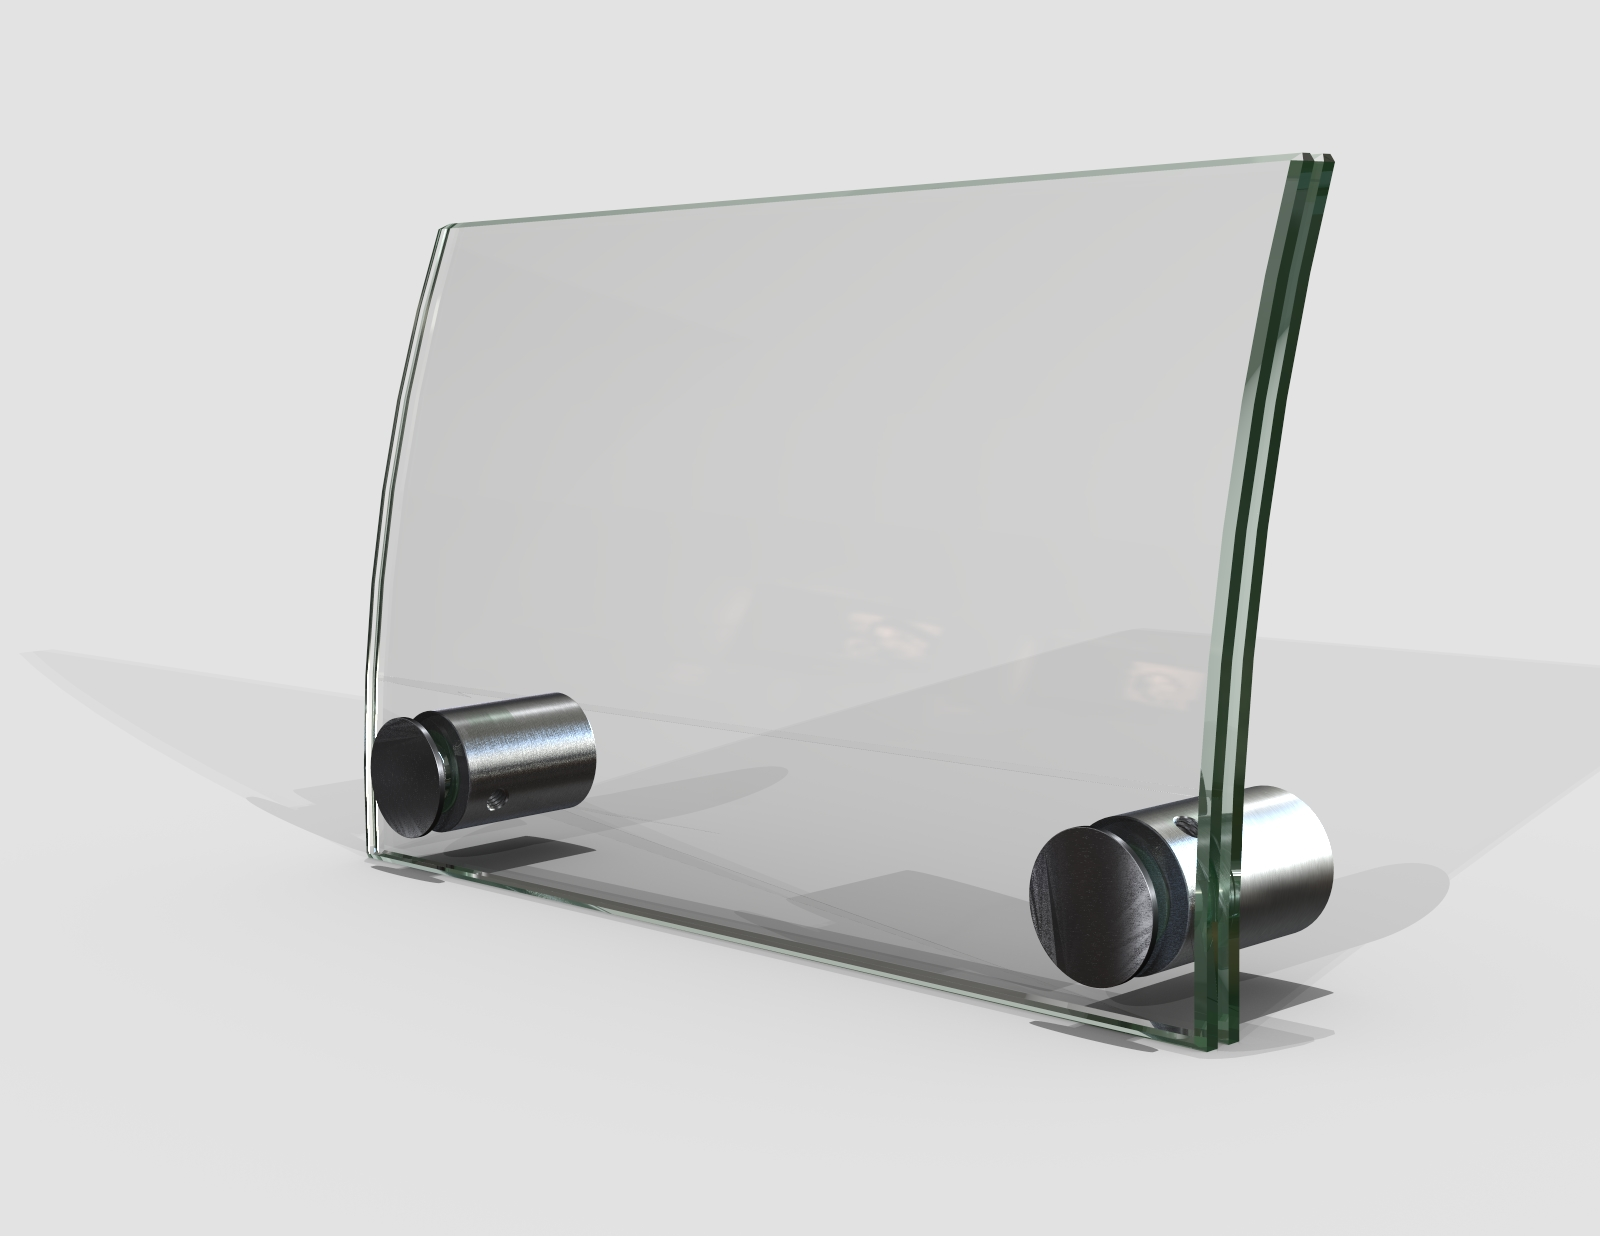 Curved Glass for Displays